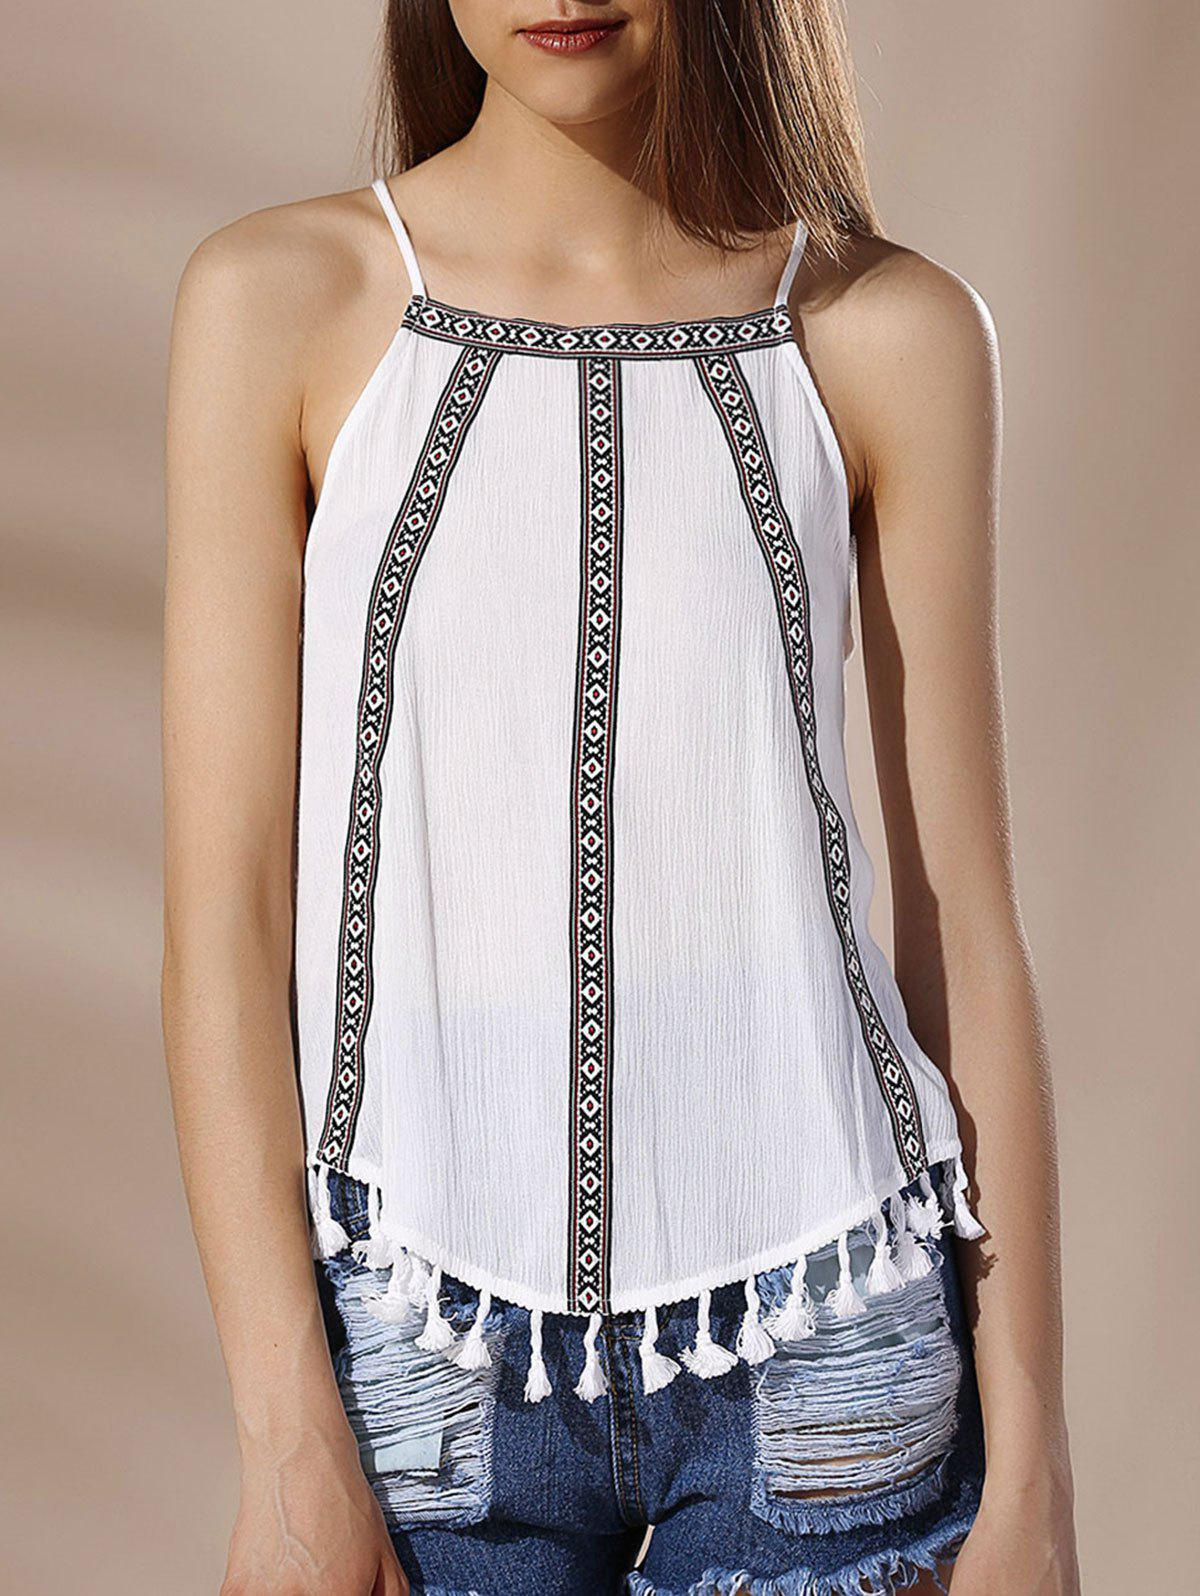 Latest Chic Spaghetti Strap Tribal Print Fringed Women's Tank Top